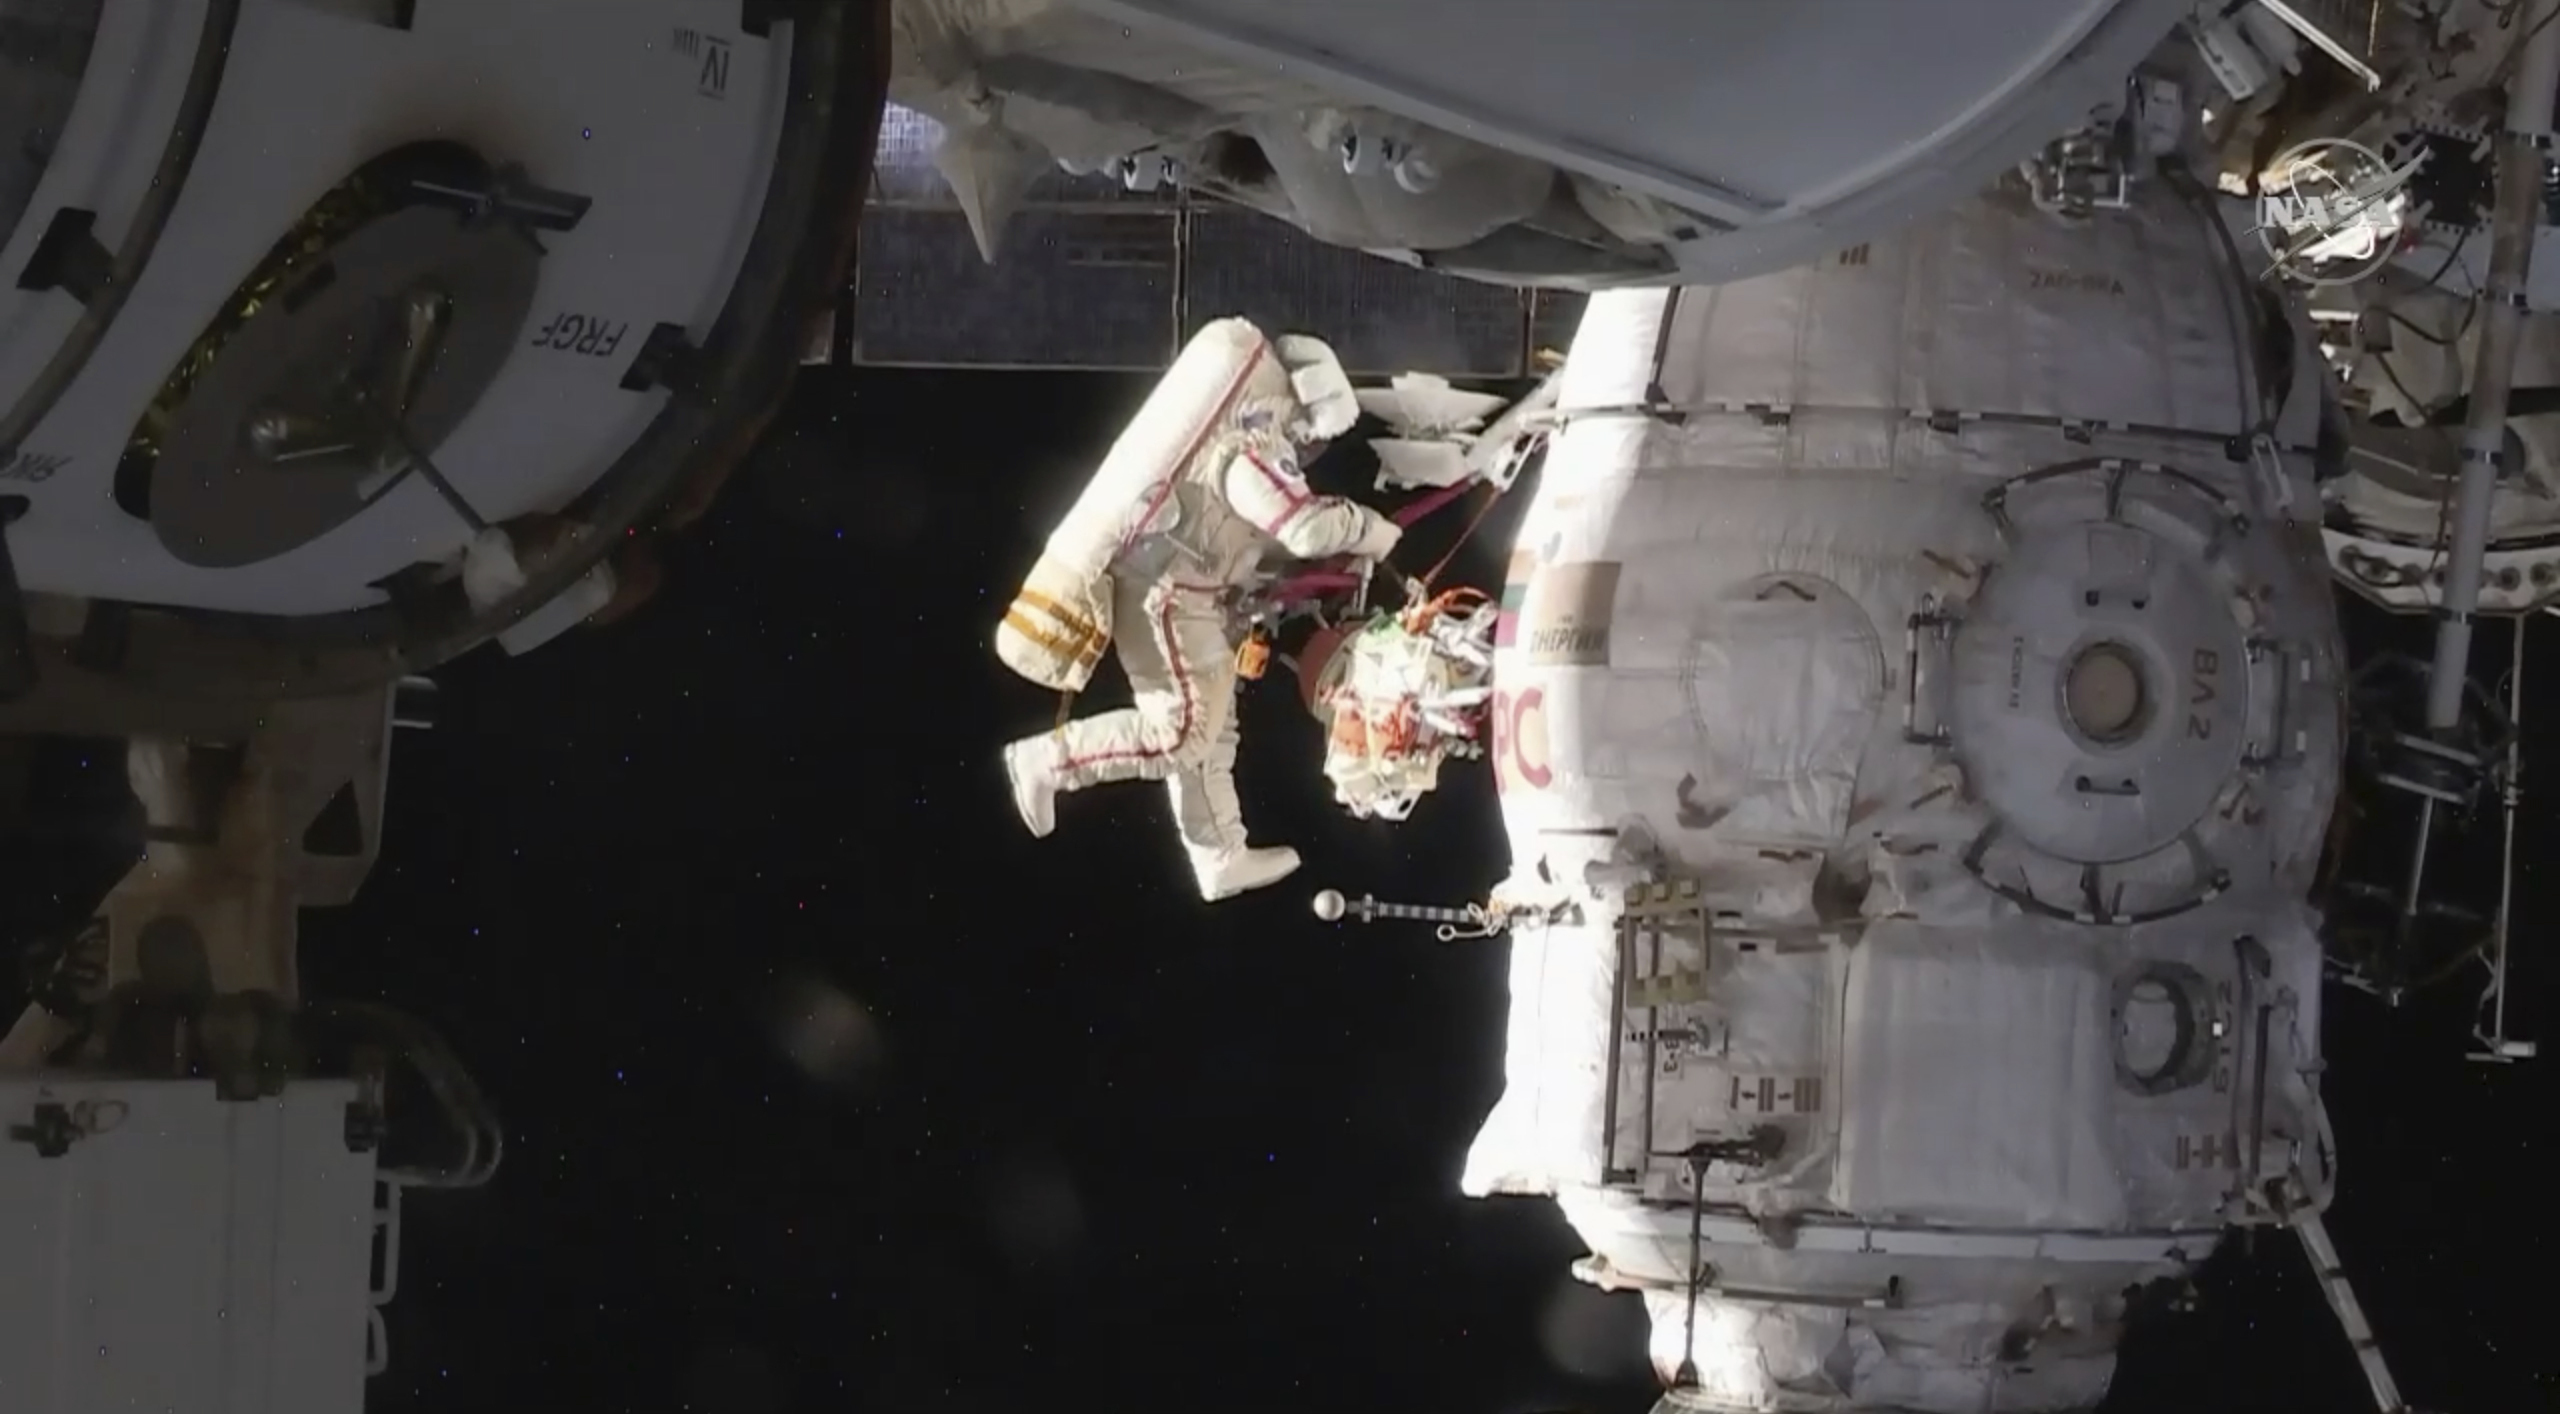 Cosmonauts to examine mystery hole on ISS spacewalk